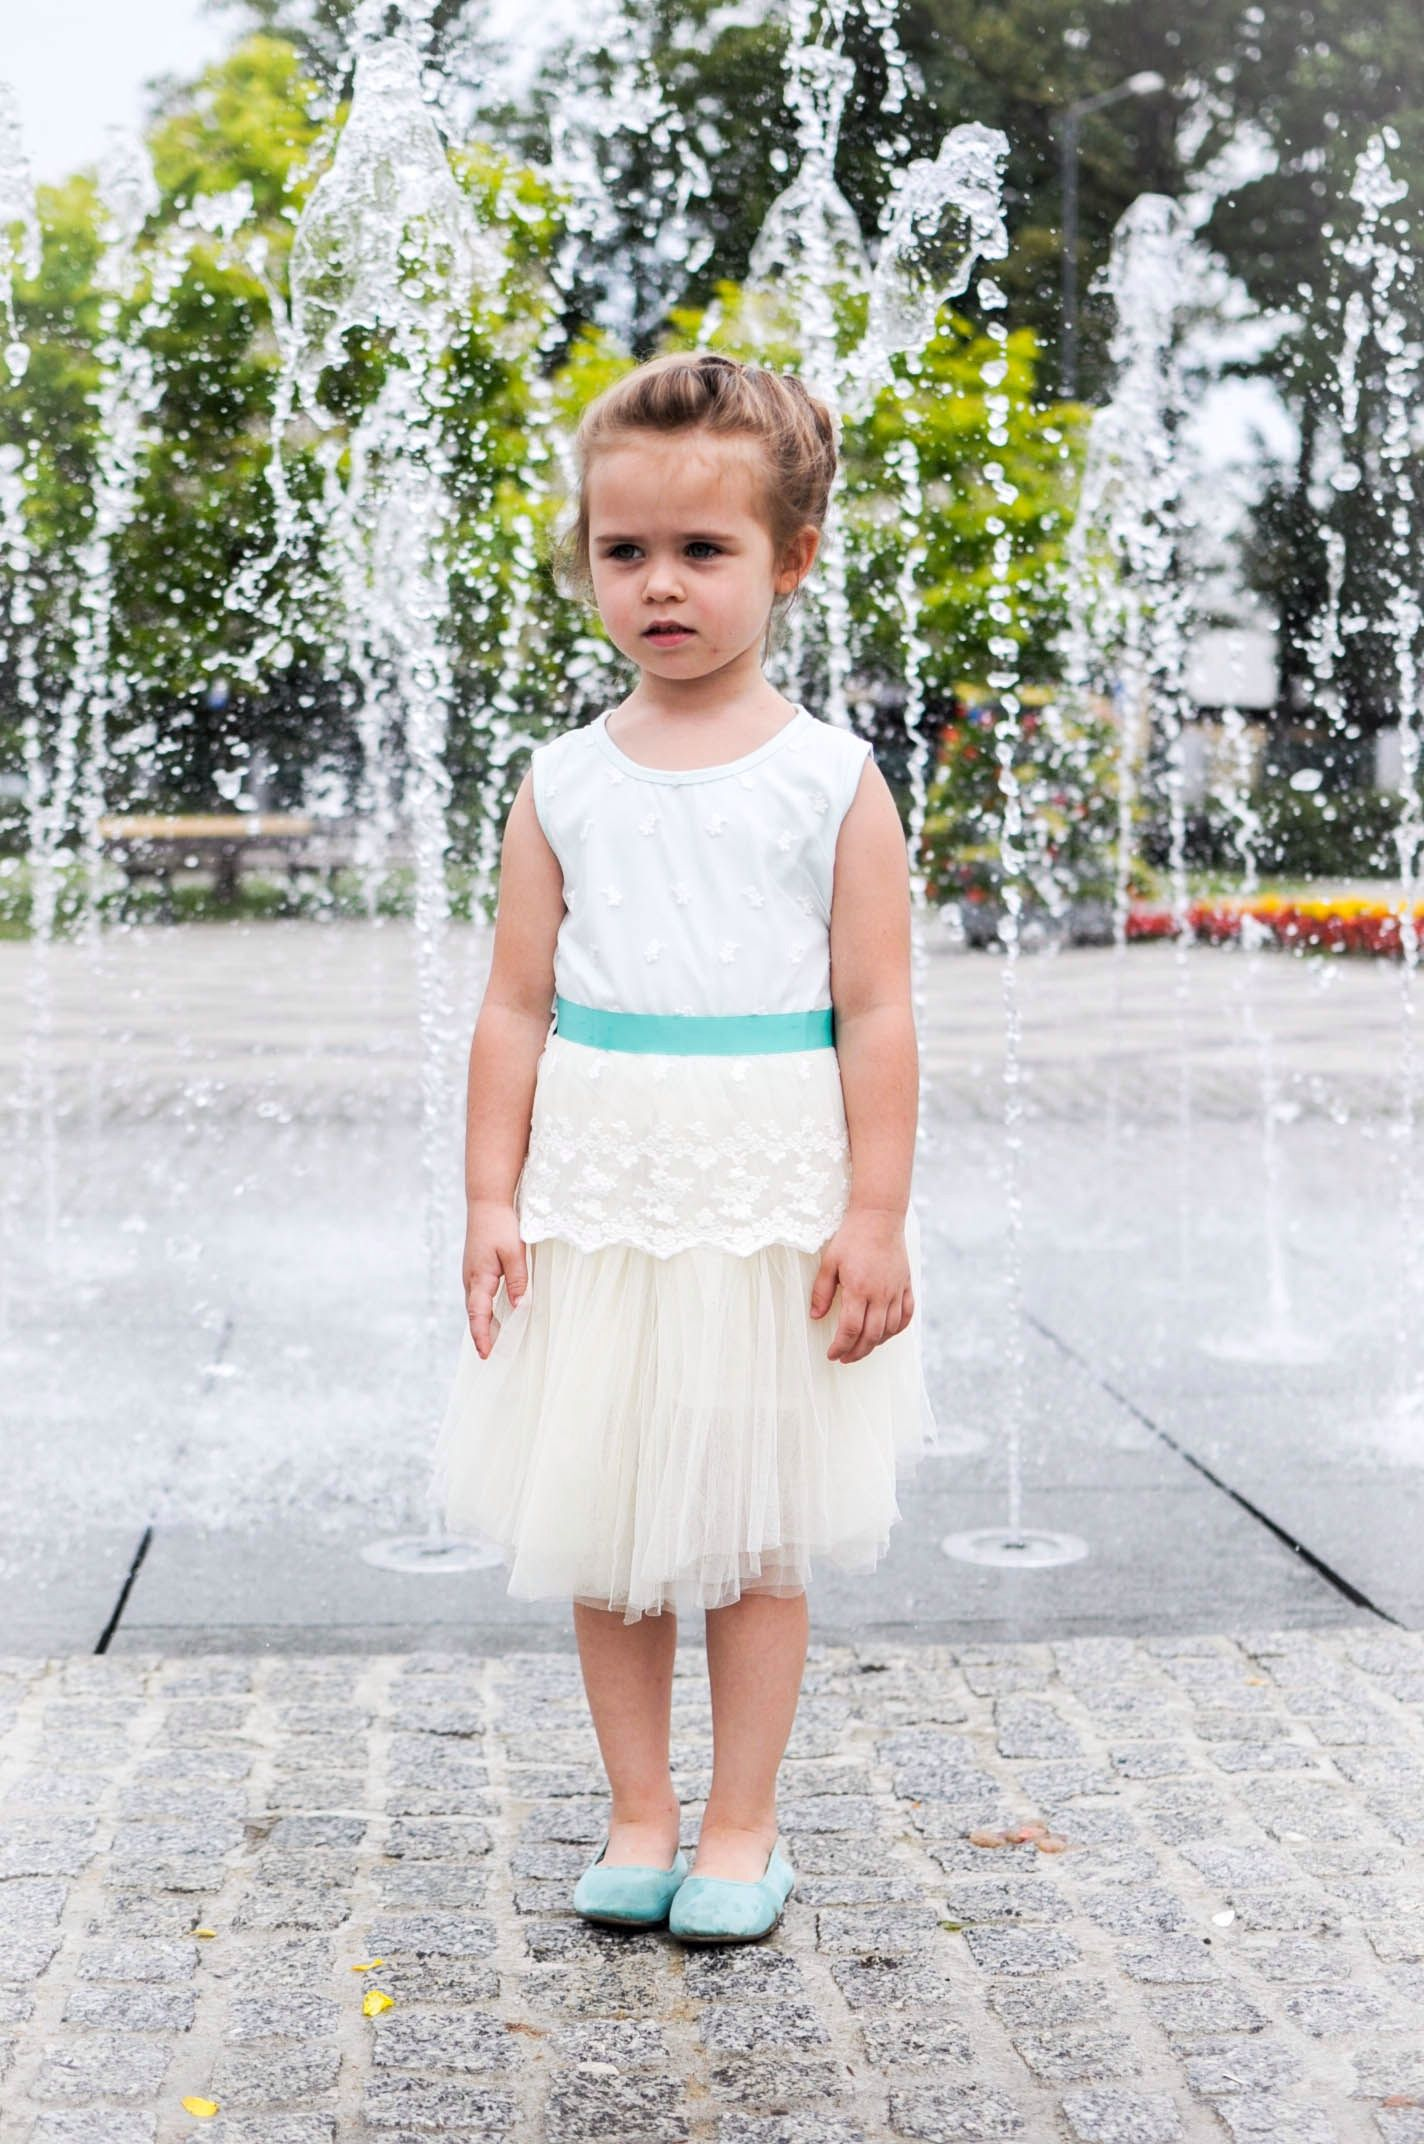 Beautiful+lace+tutu+dress+in+mint  Sizes+2T-7+years+old